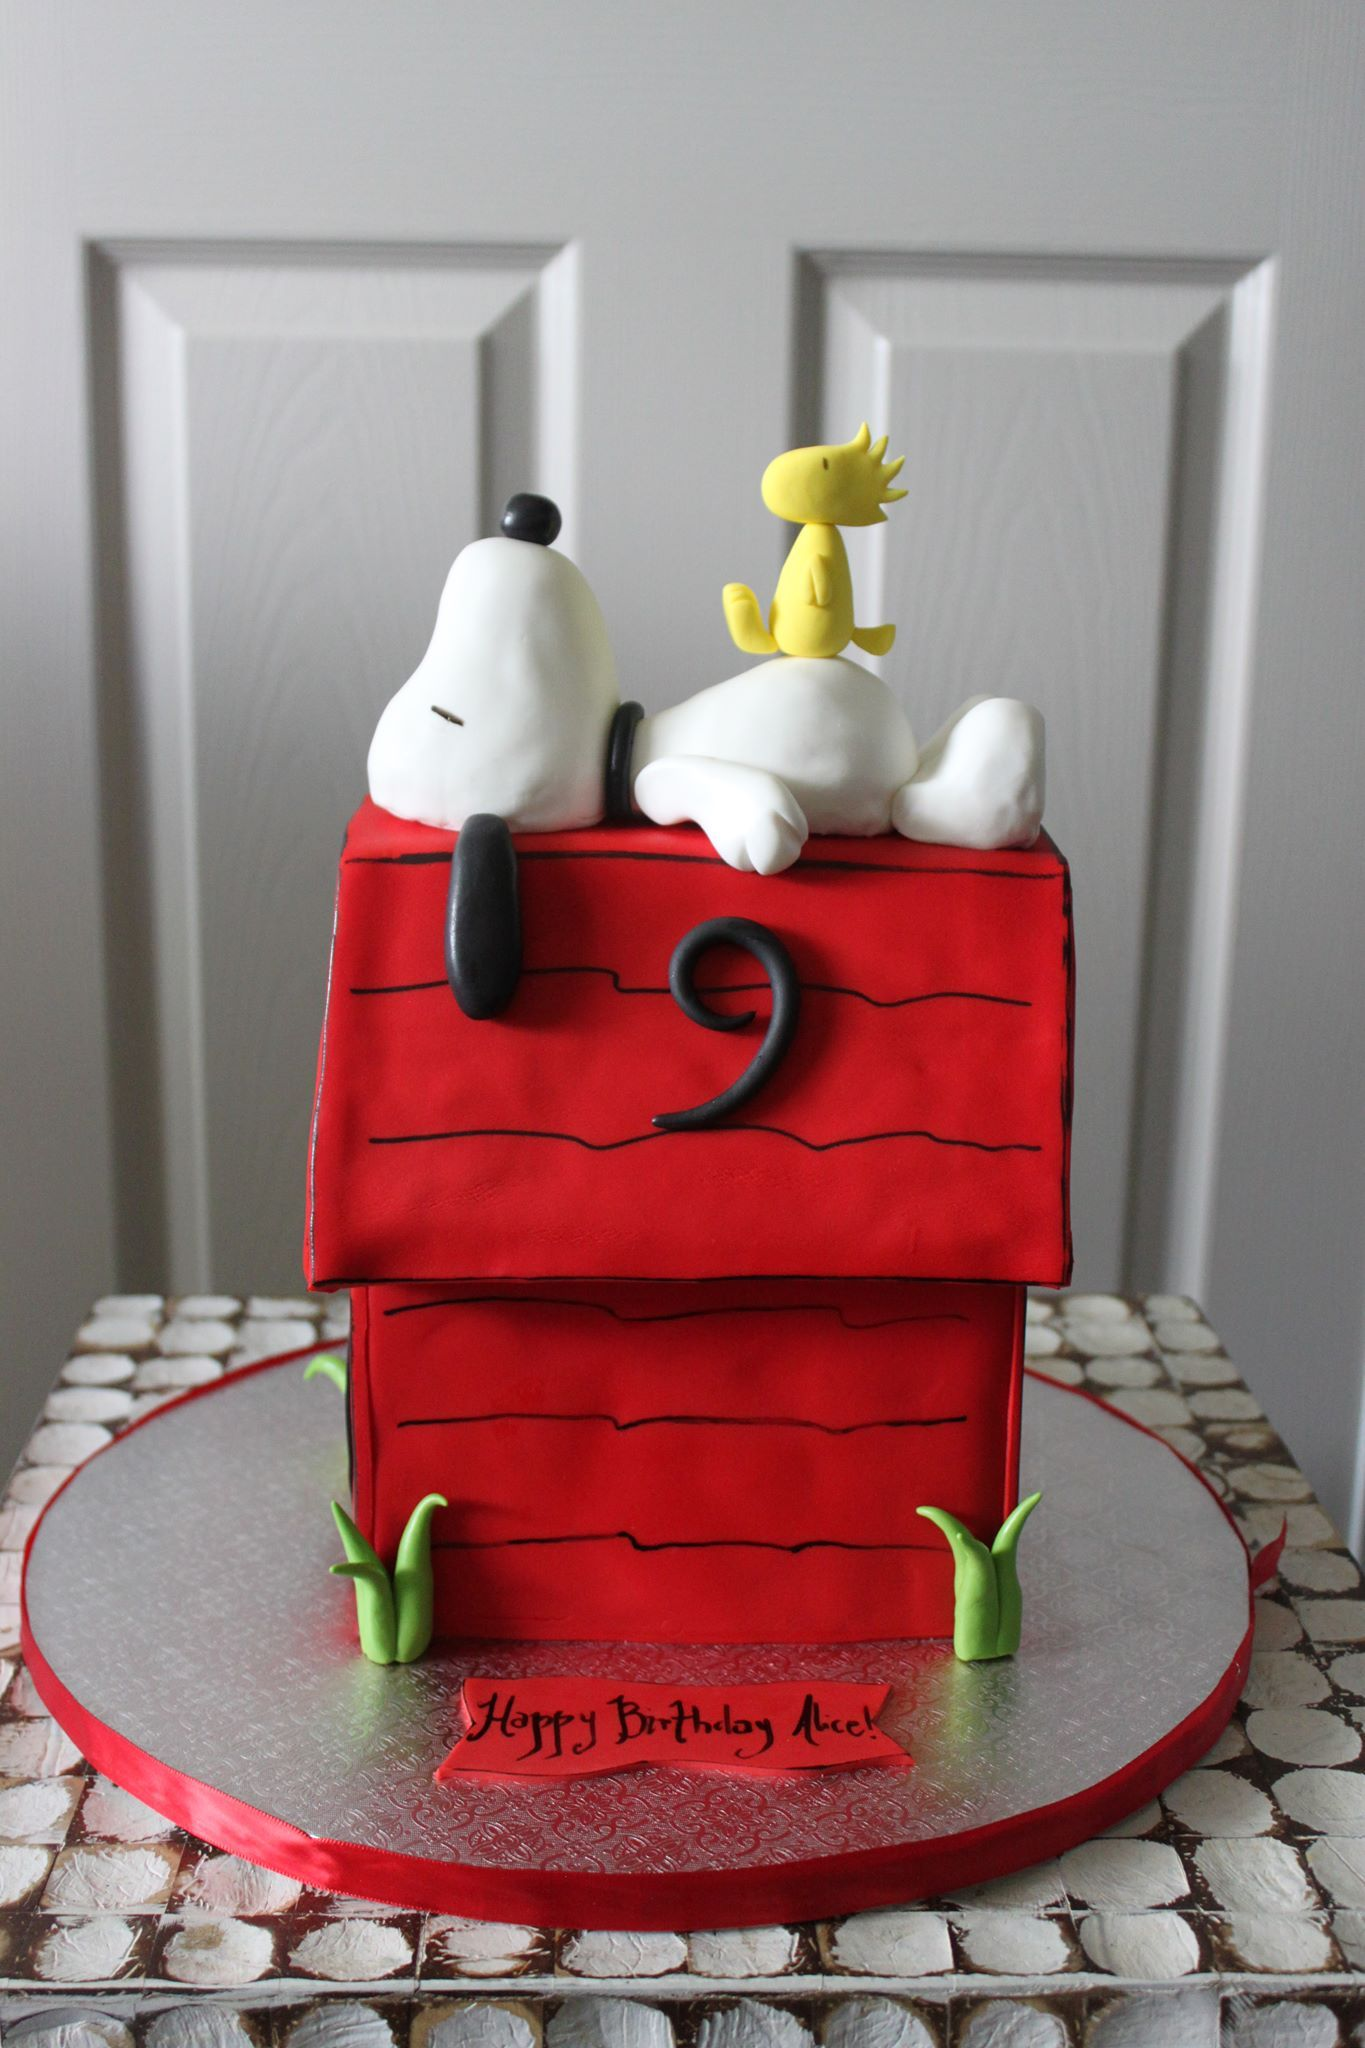 Snoopy and Woodstock Sandras Cakes facebook Husband Pinterest